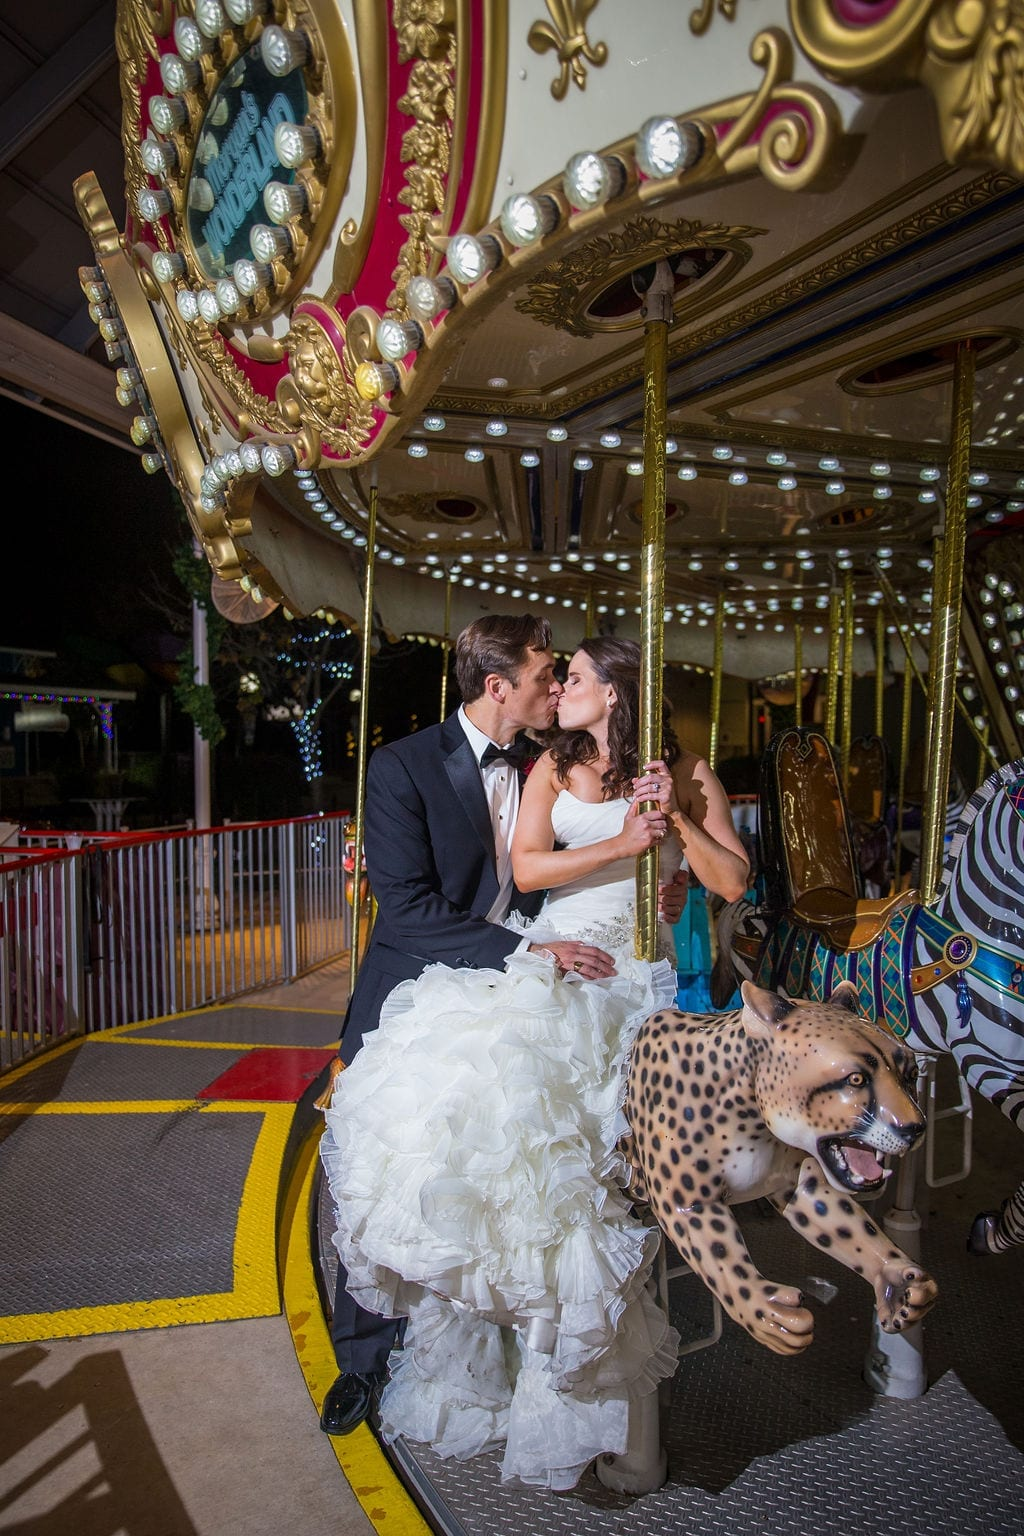 Ashley - Josh's wedding at Morgan's Wonderland on the carousel